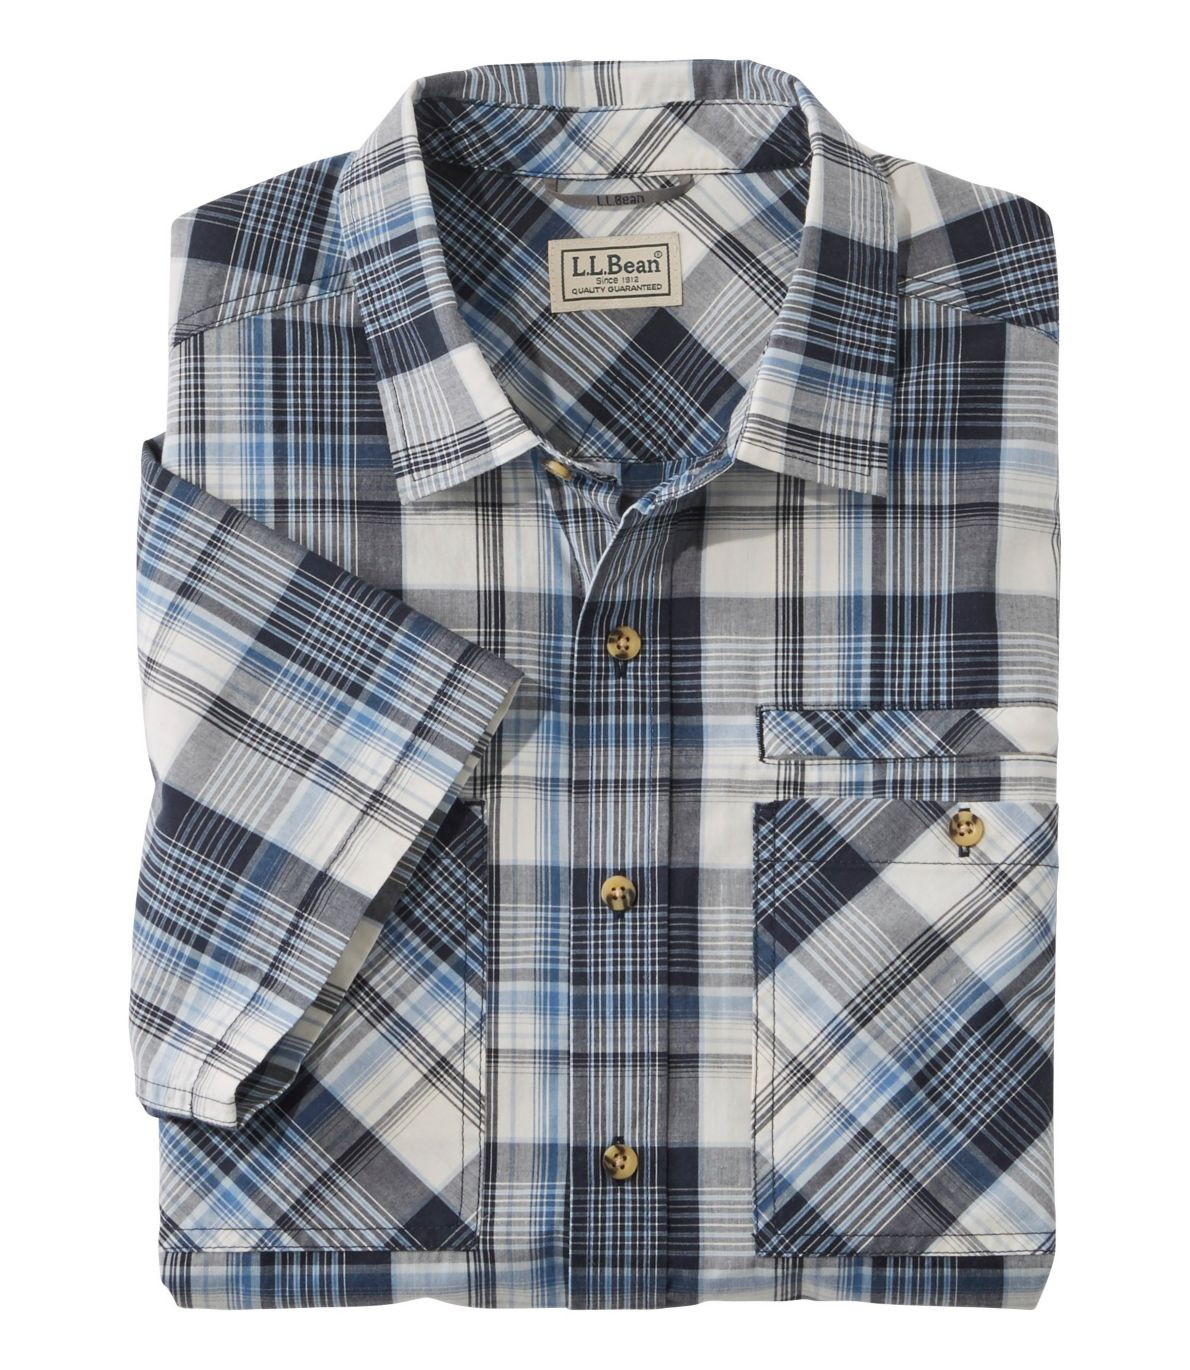 Men's Otter Cliff Shirt, Short-Sleeve Plaid